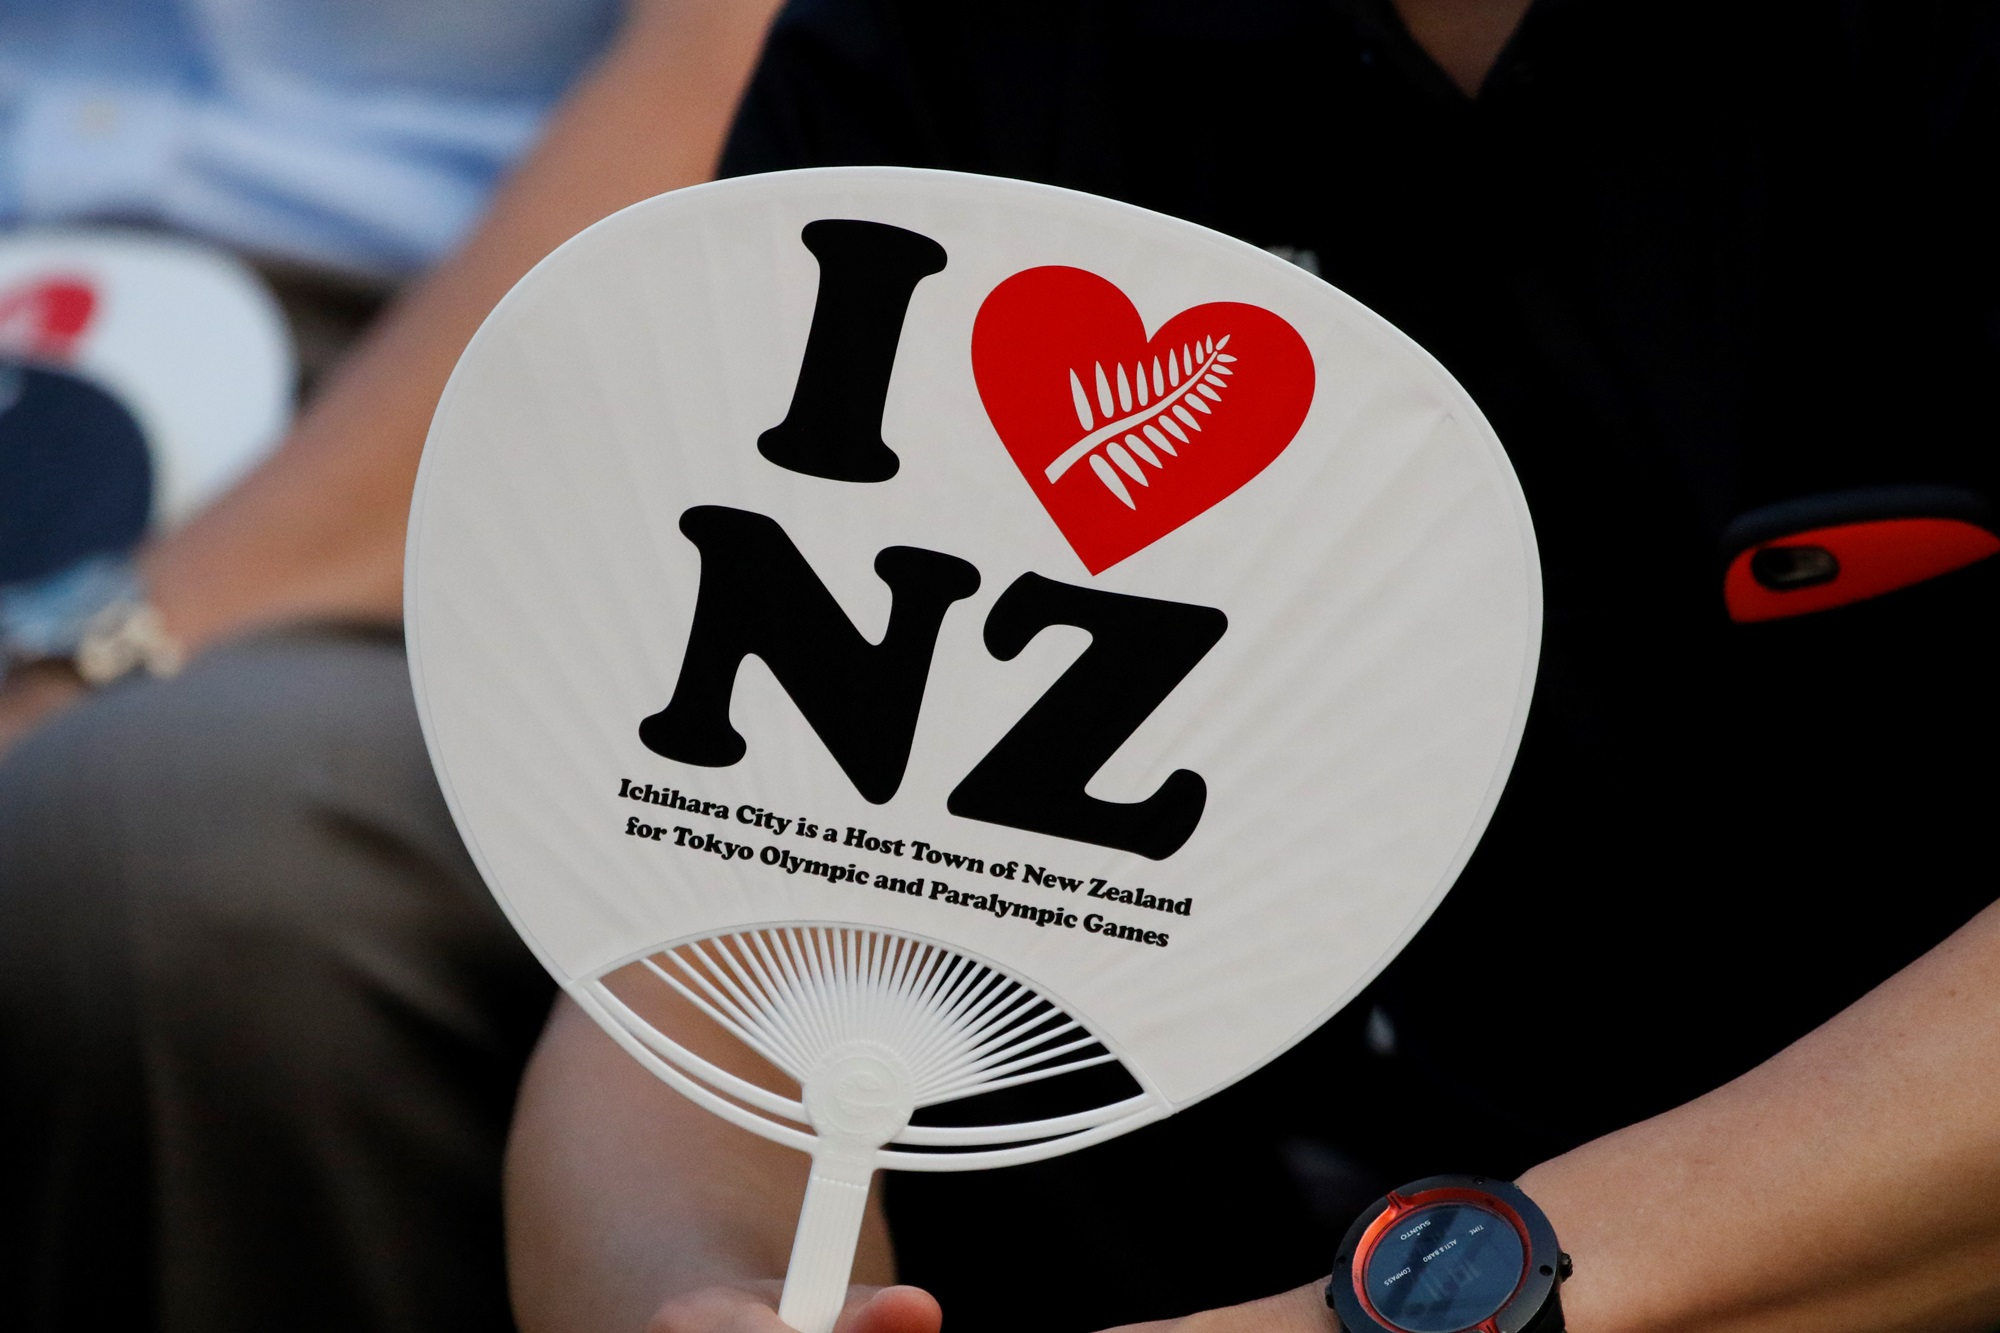 Kiwis fans display their love